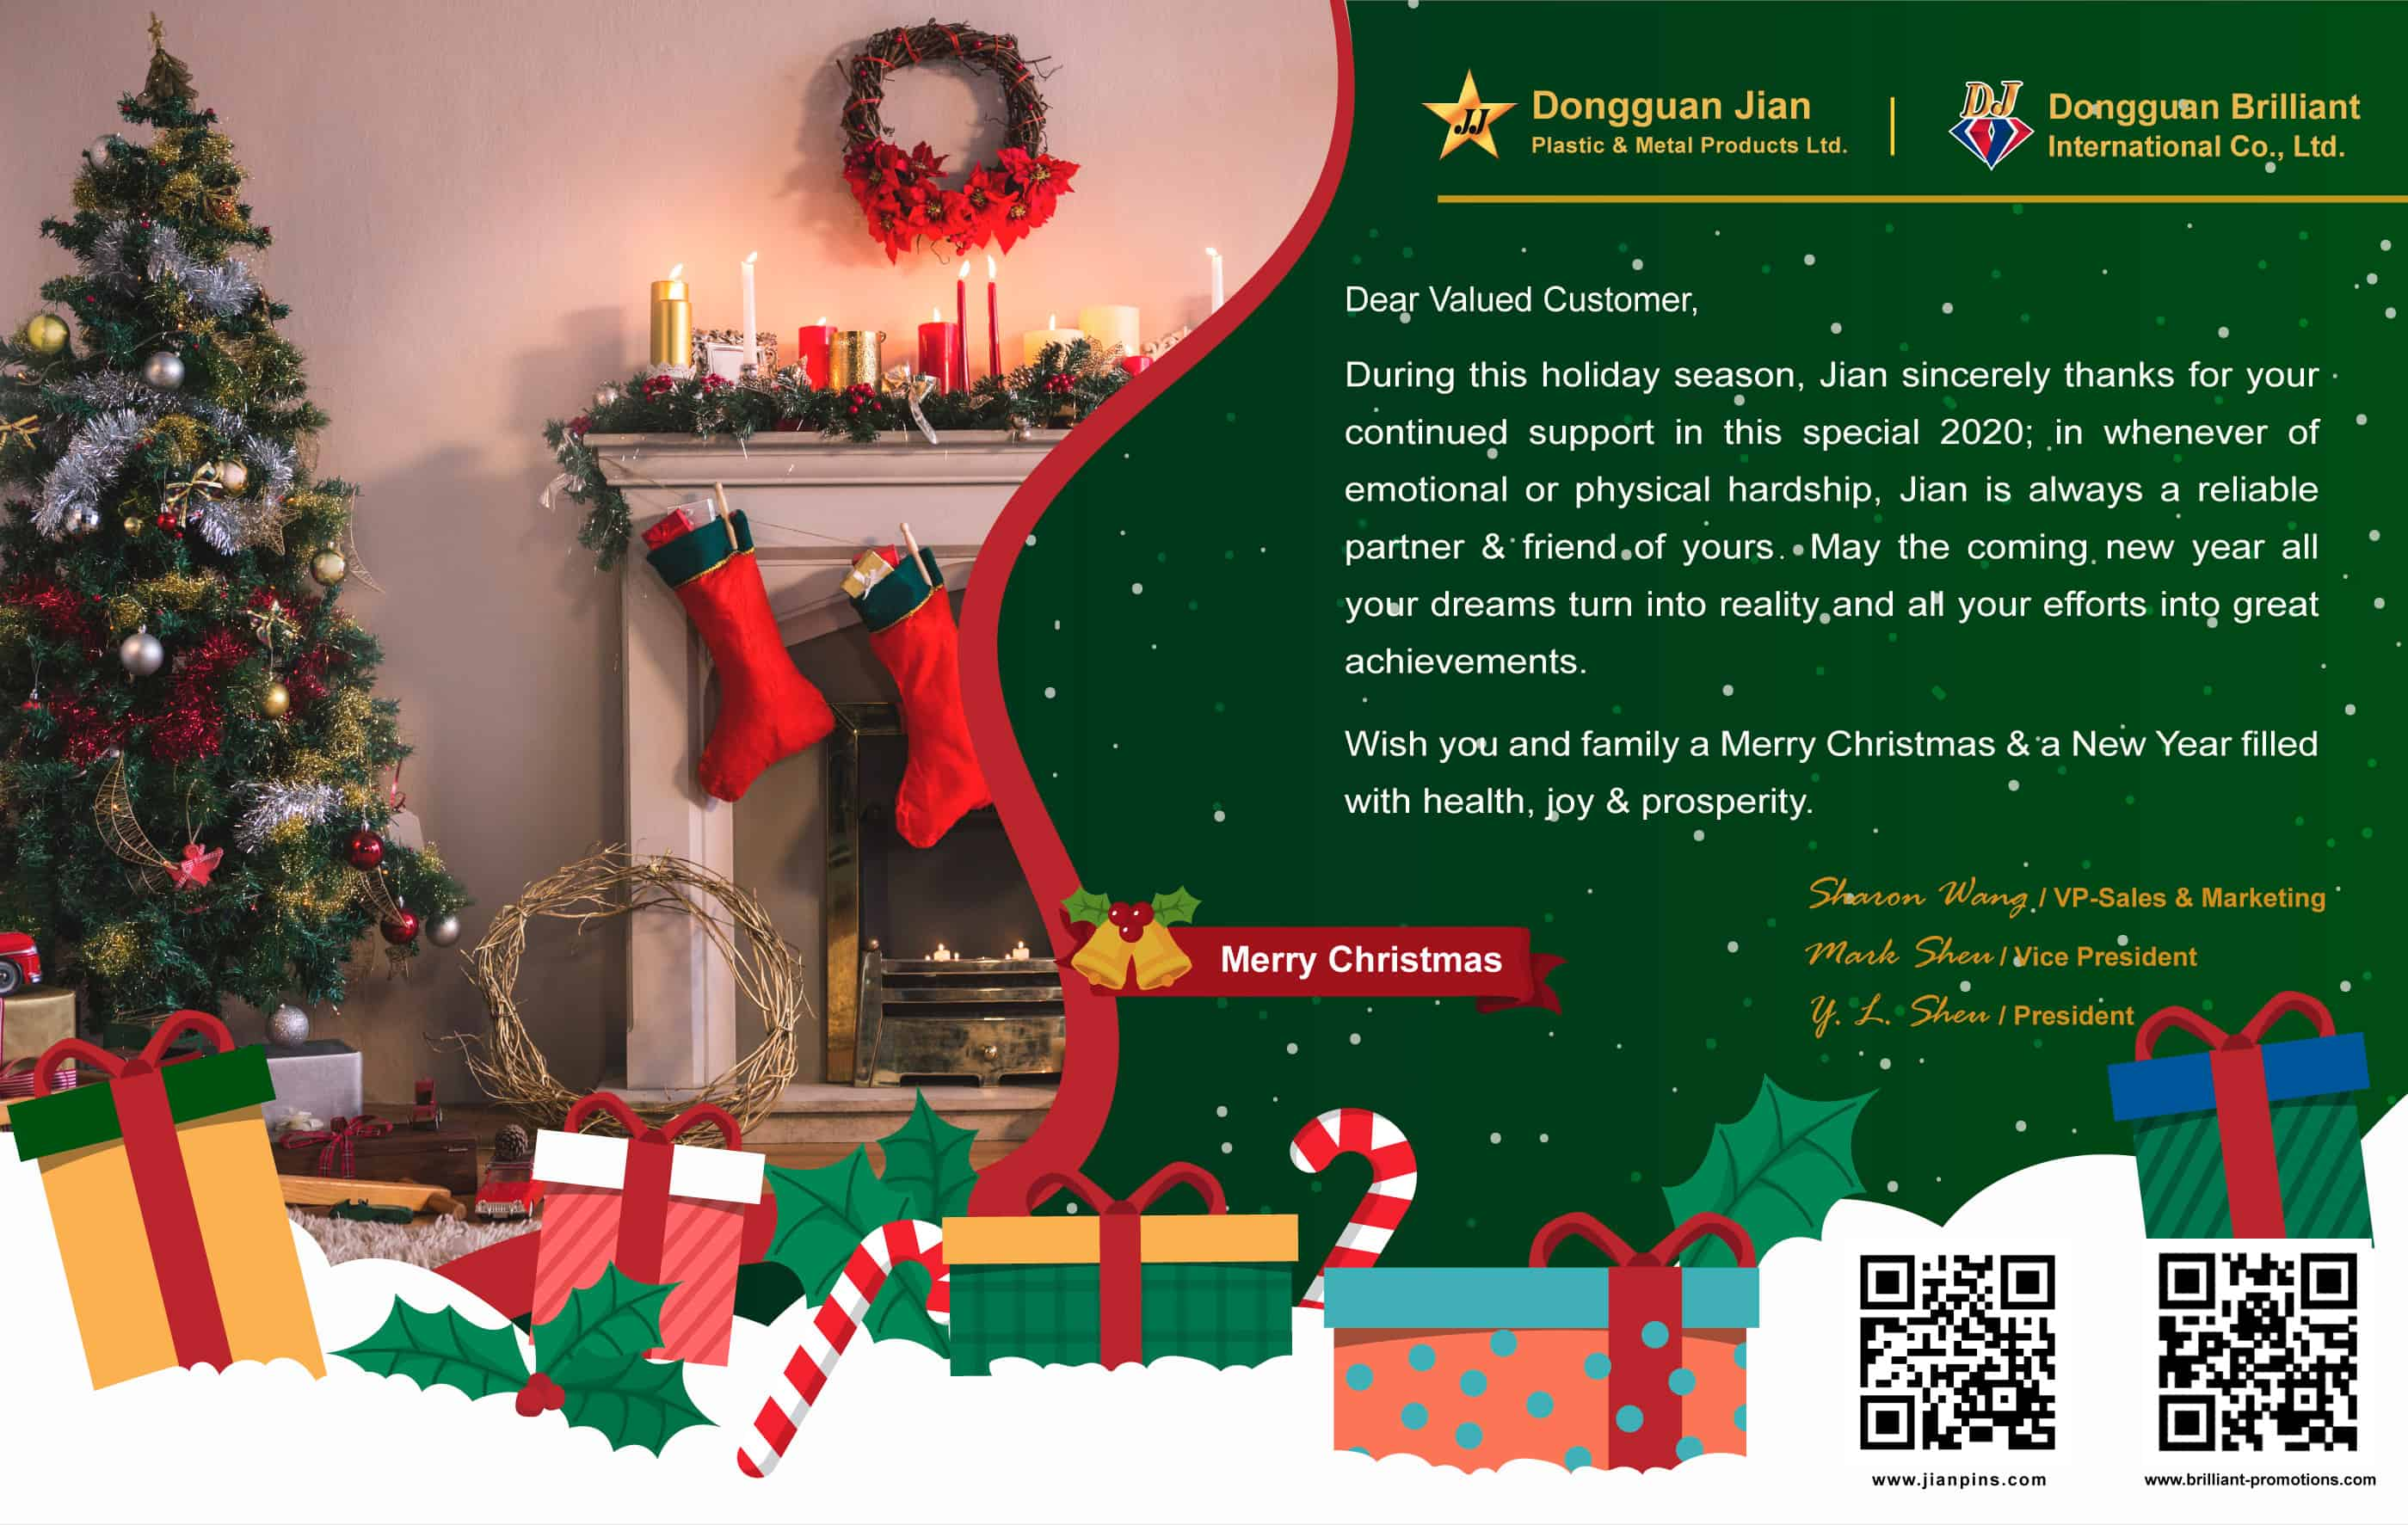 Christmas Ty 2021 Products Merry Christmas And Happy New Year Greeting From Dongguan Jian Brilliant